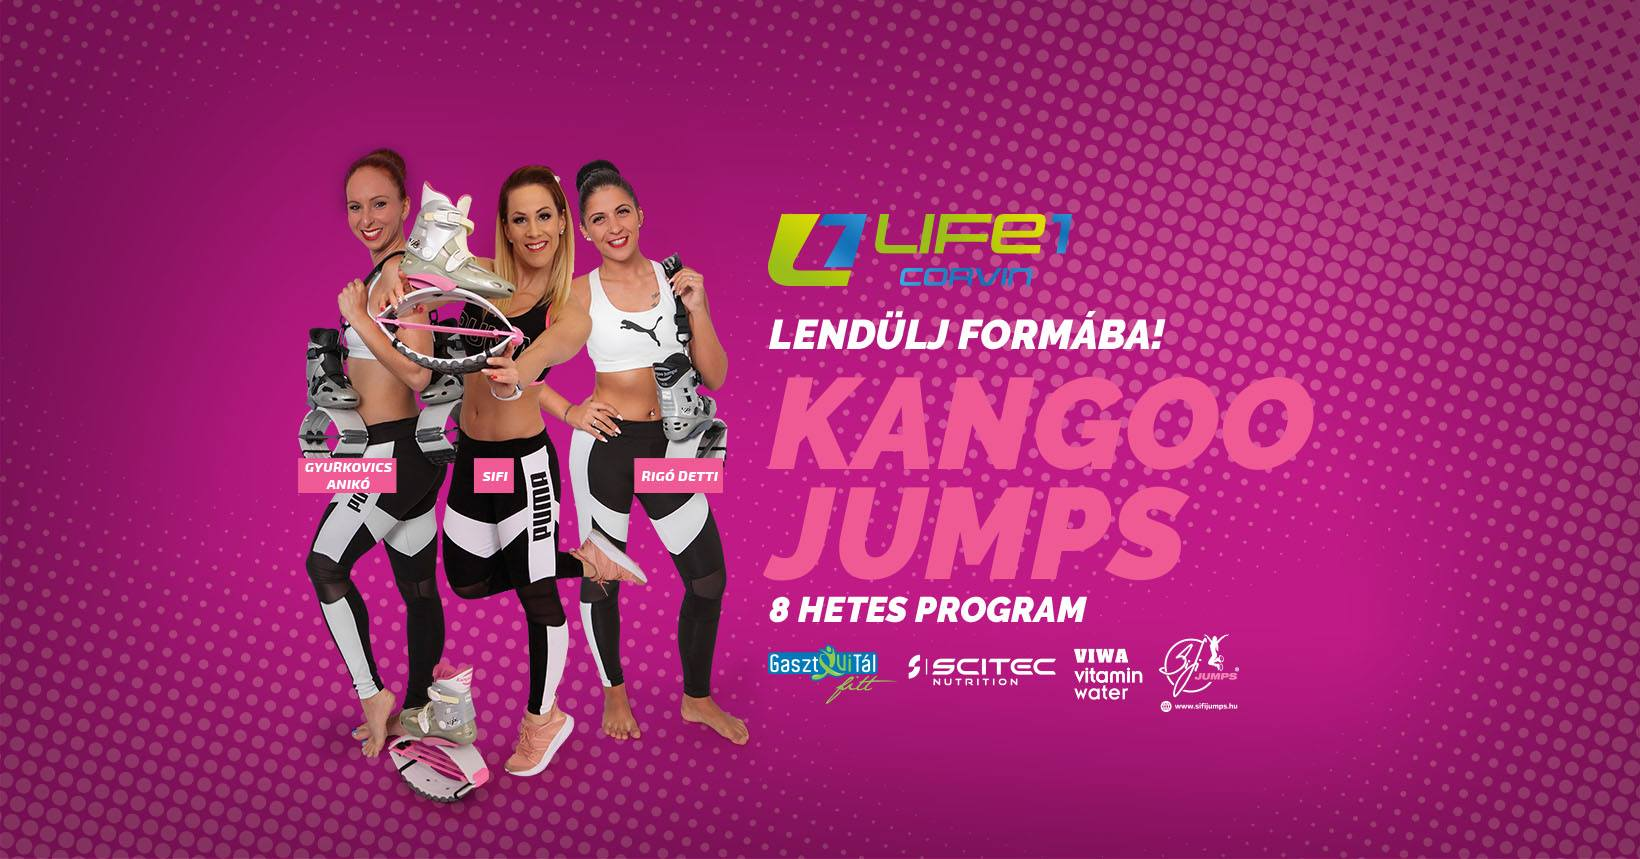 Kangoo Jumps Alakformáló program